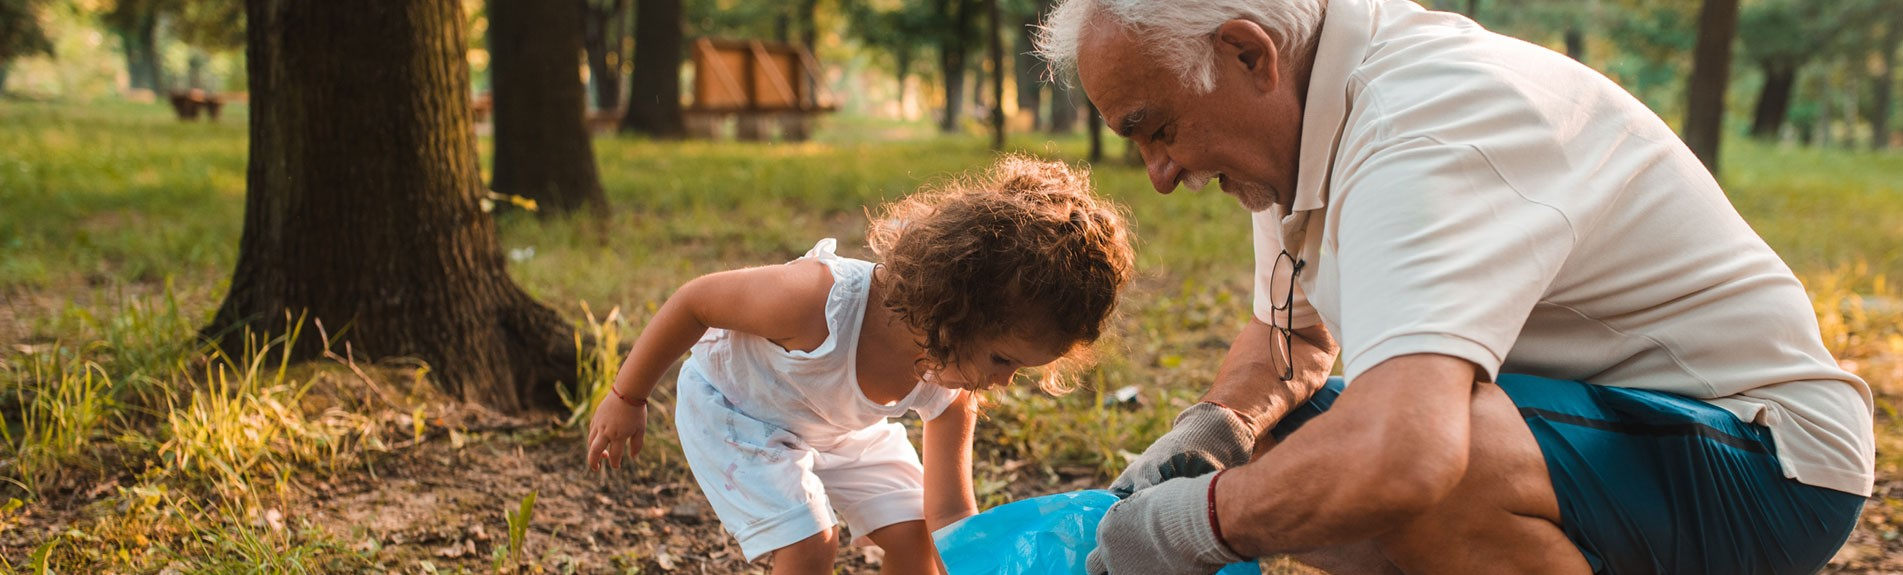 Grandpa And His Granddaughter Keeping The Environment Clean